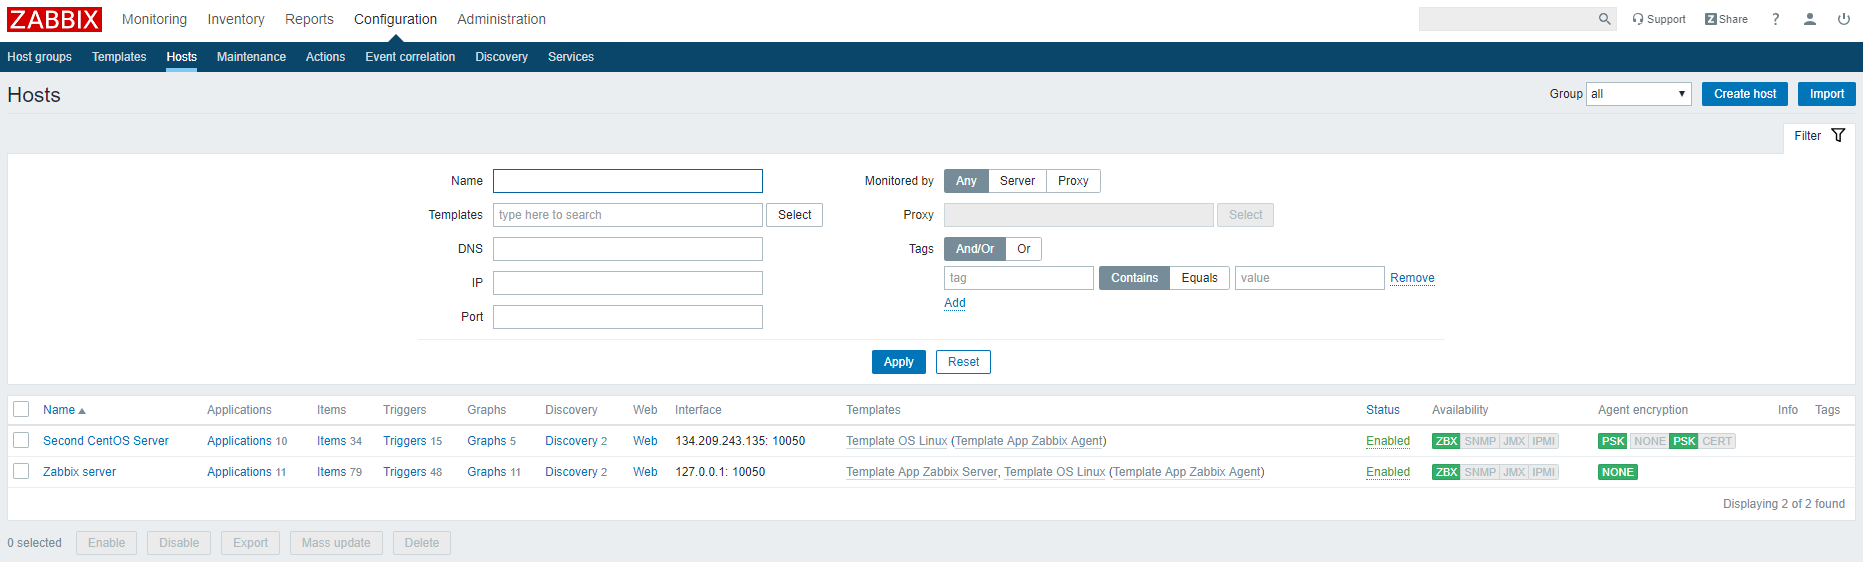 Zabbix shows your new host